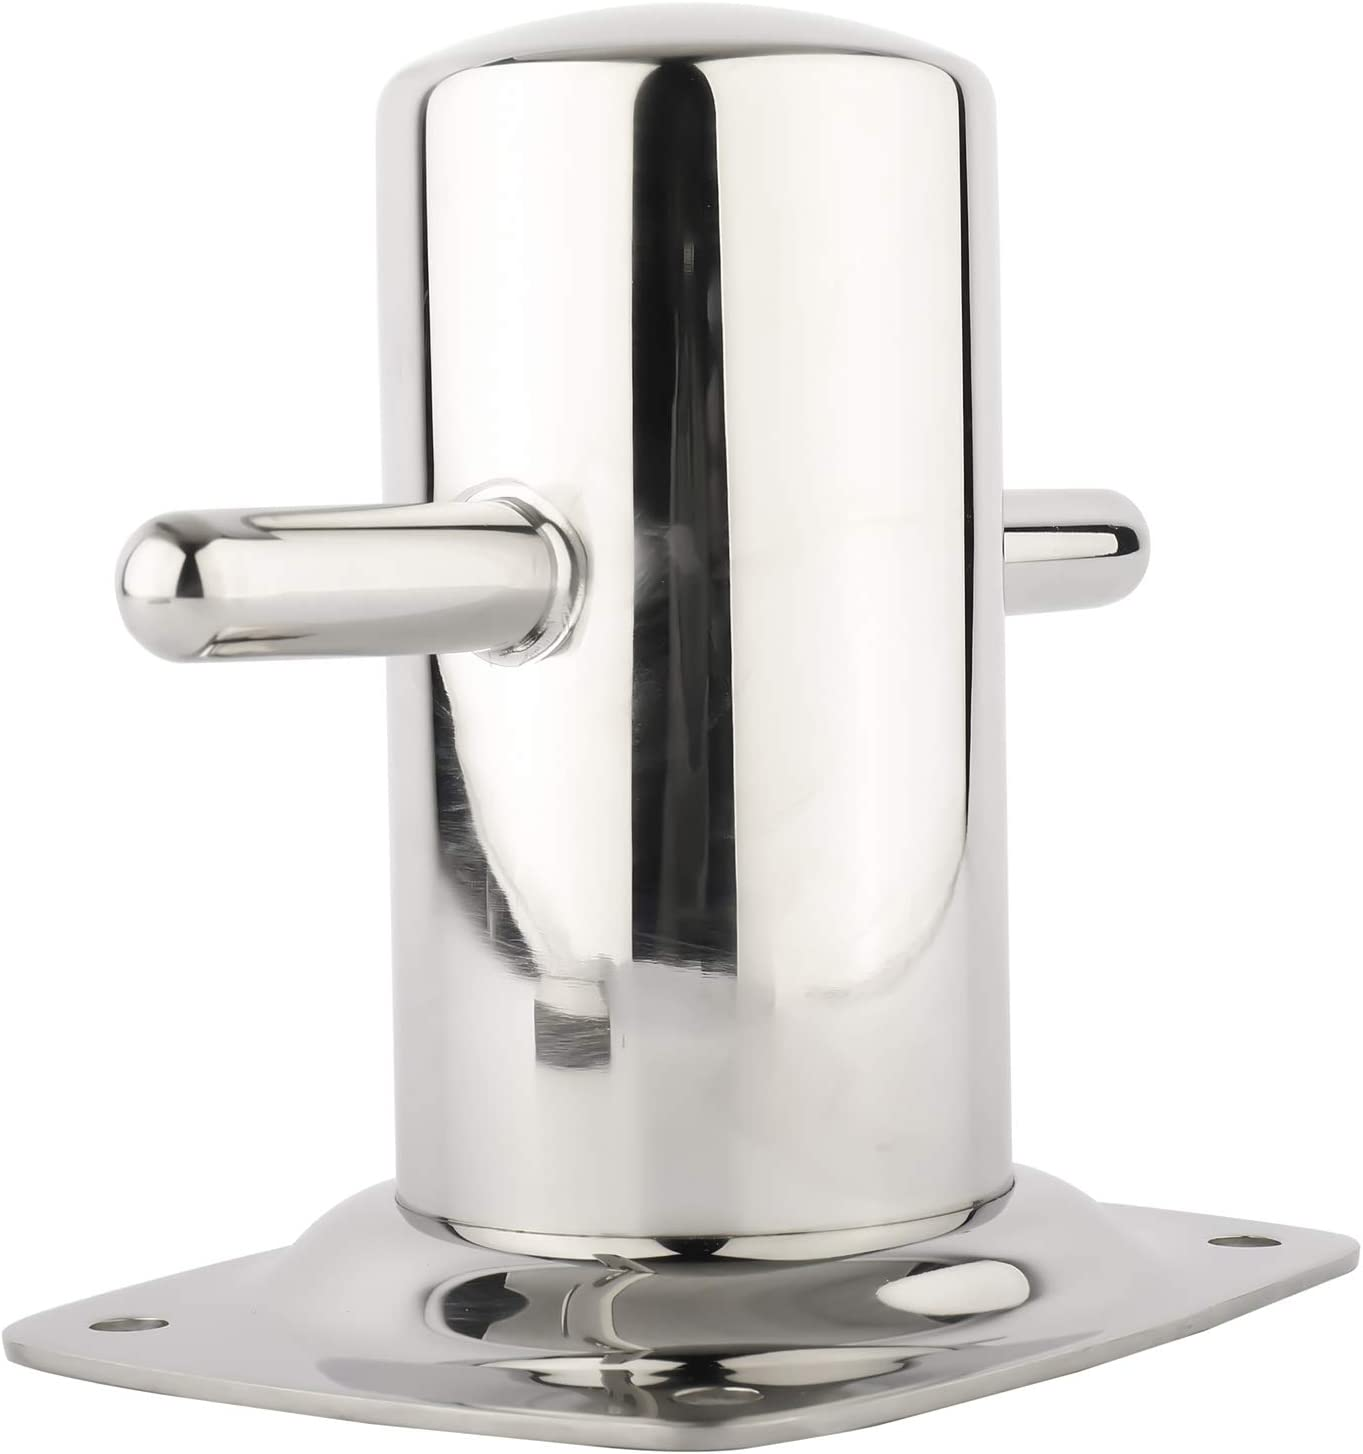 DasMarine Bollard with Base Plate,2-3//4 Dia Bollard Cleat Mooring Bit with 4.65 x 5.51 Base Plate,316SS Cleat for Dock